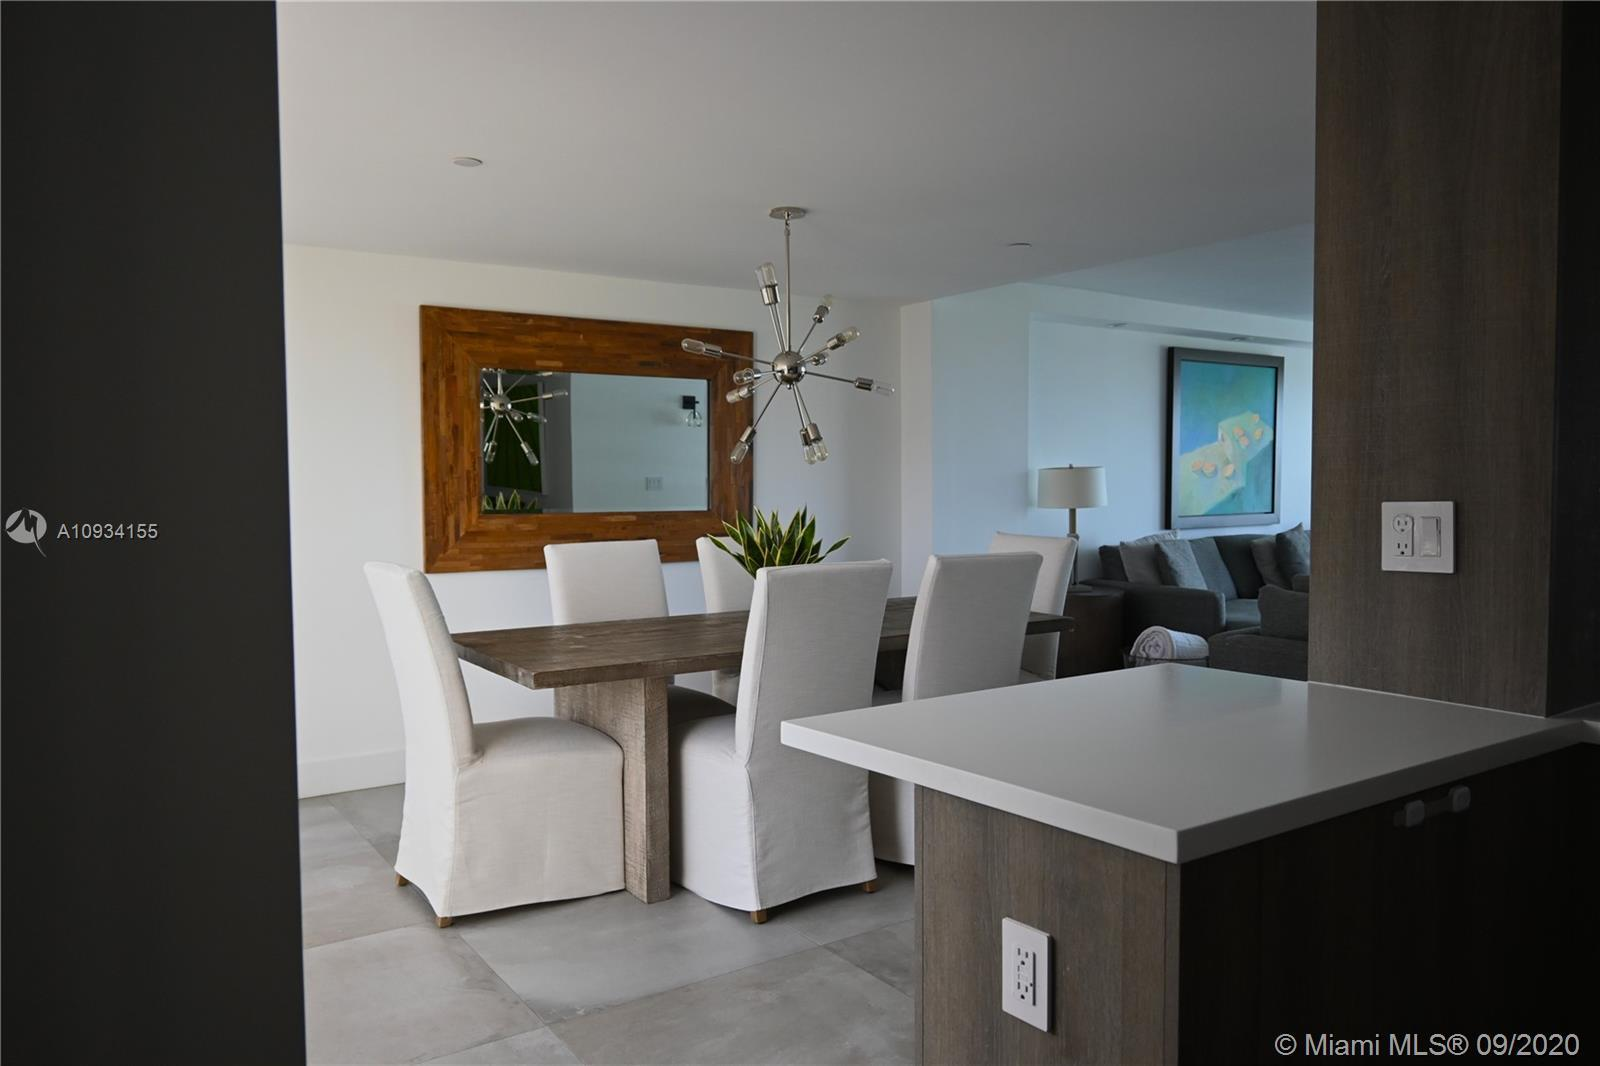 Gorgeous oversized apartment remodeled to perfection in 2018. It is located in the Iconic Atlantis C